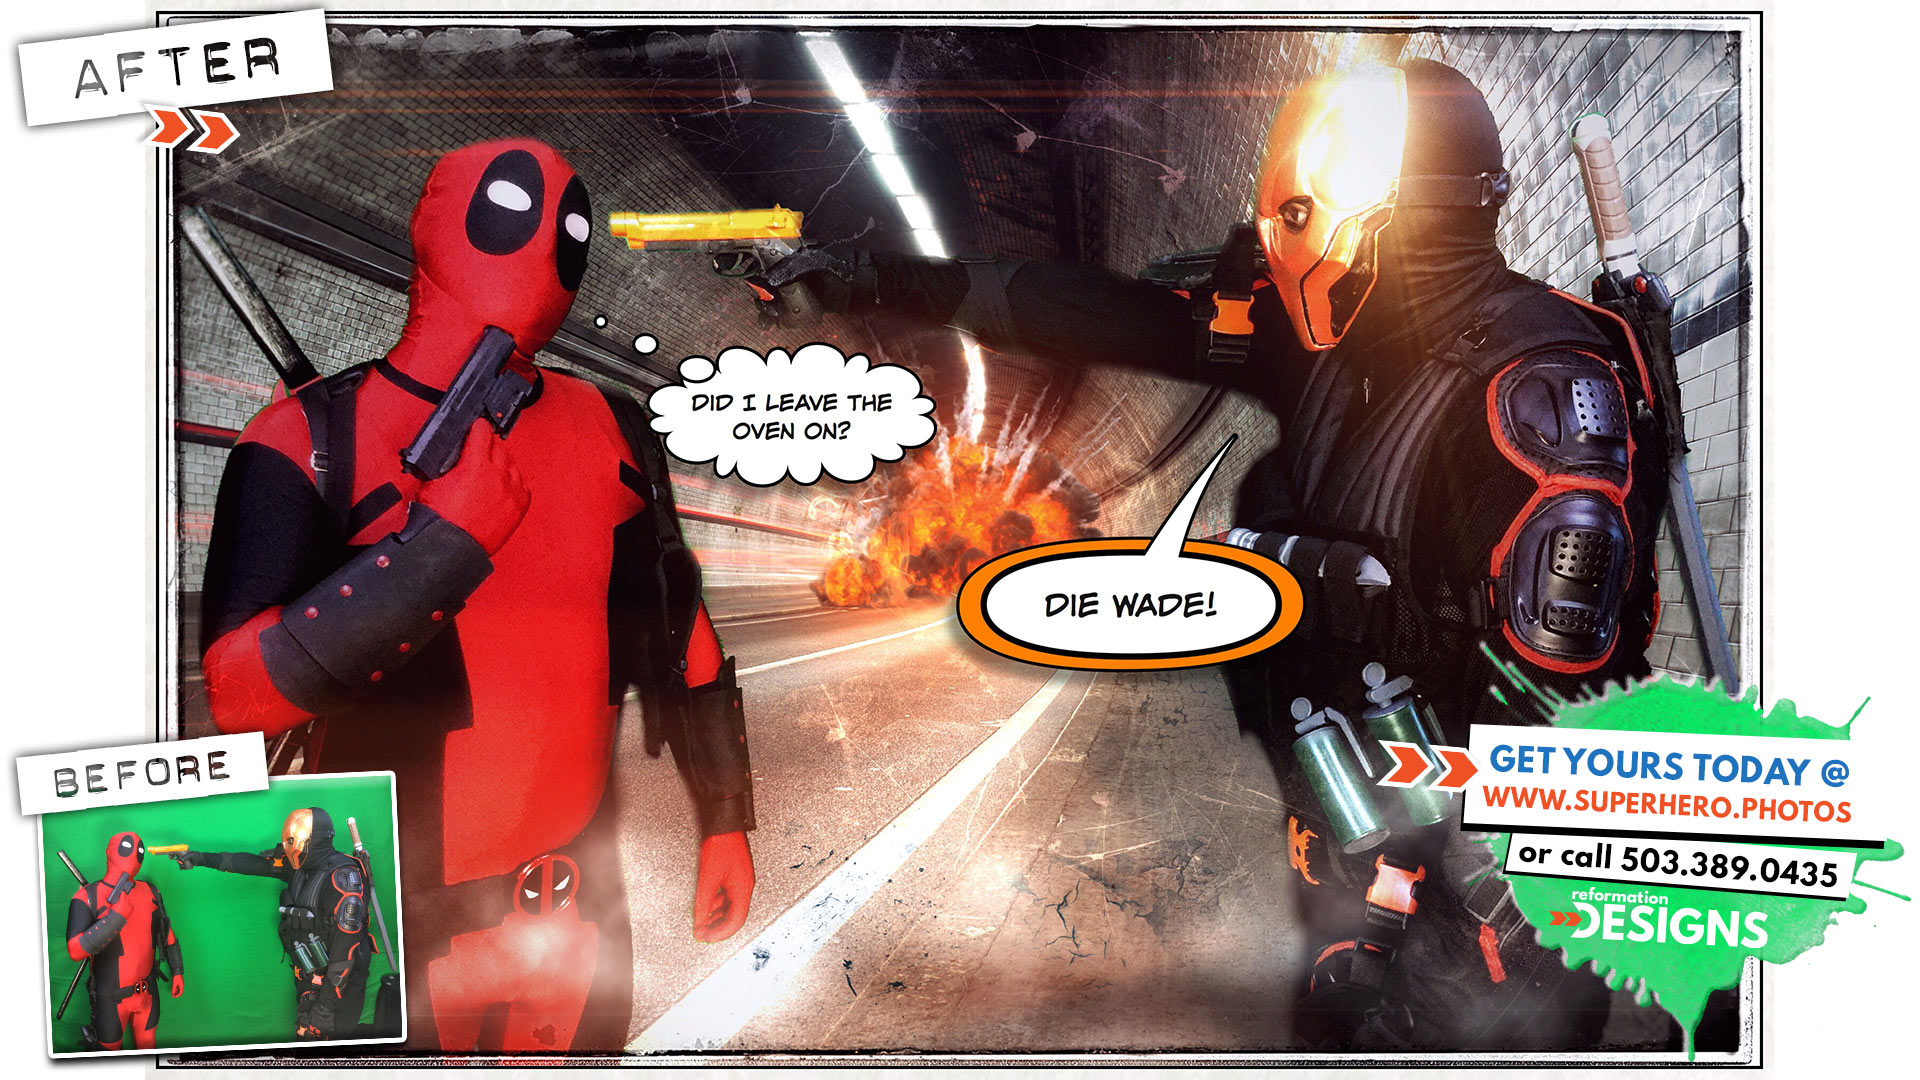 Special Effects - superhero-photobooth-by-reformation-designs-1-deadpool-vs-deathstroke-june-2015